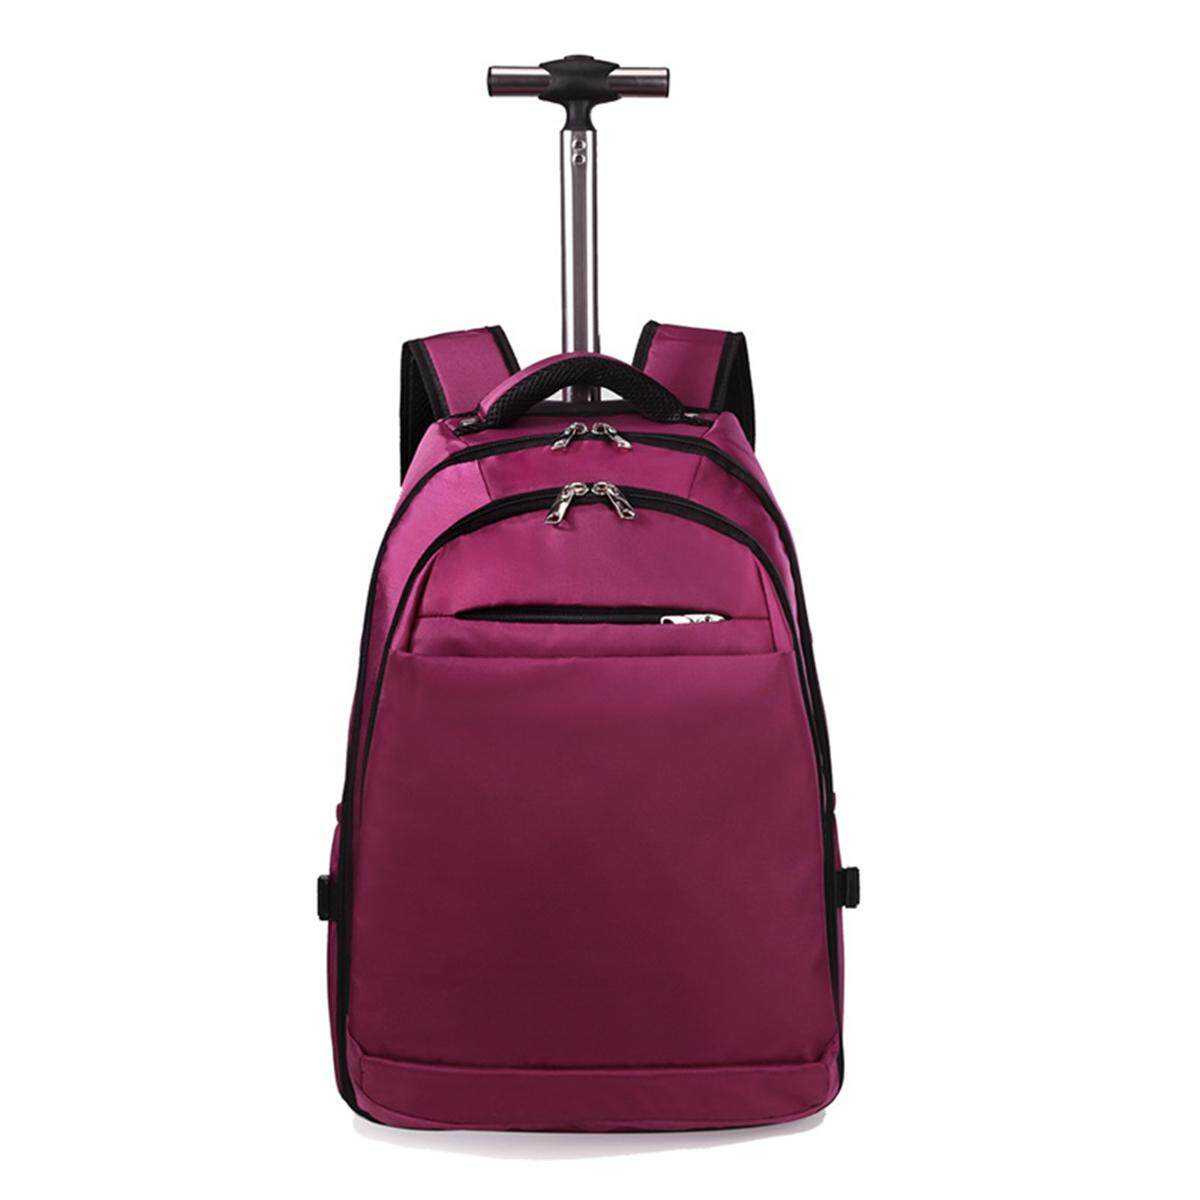 20 inch Wheeled Laptop Trolley Boarding Suitcase Luggage Backpack Rucksack Bags Student